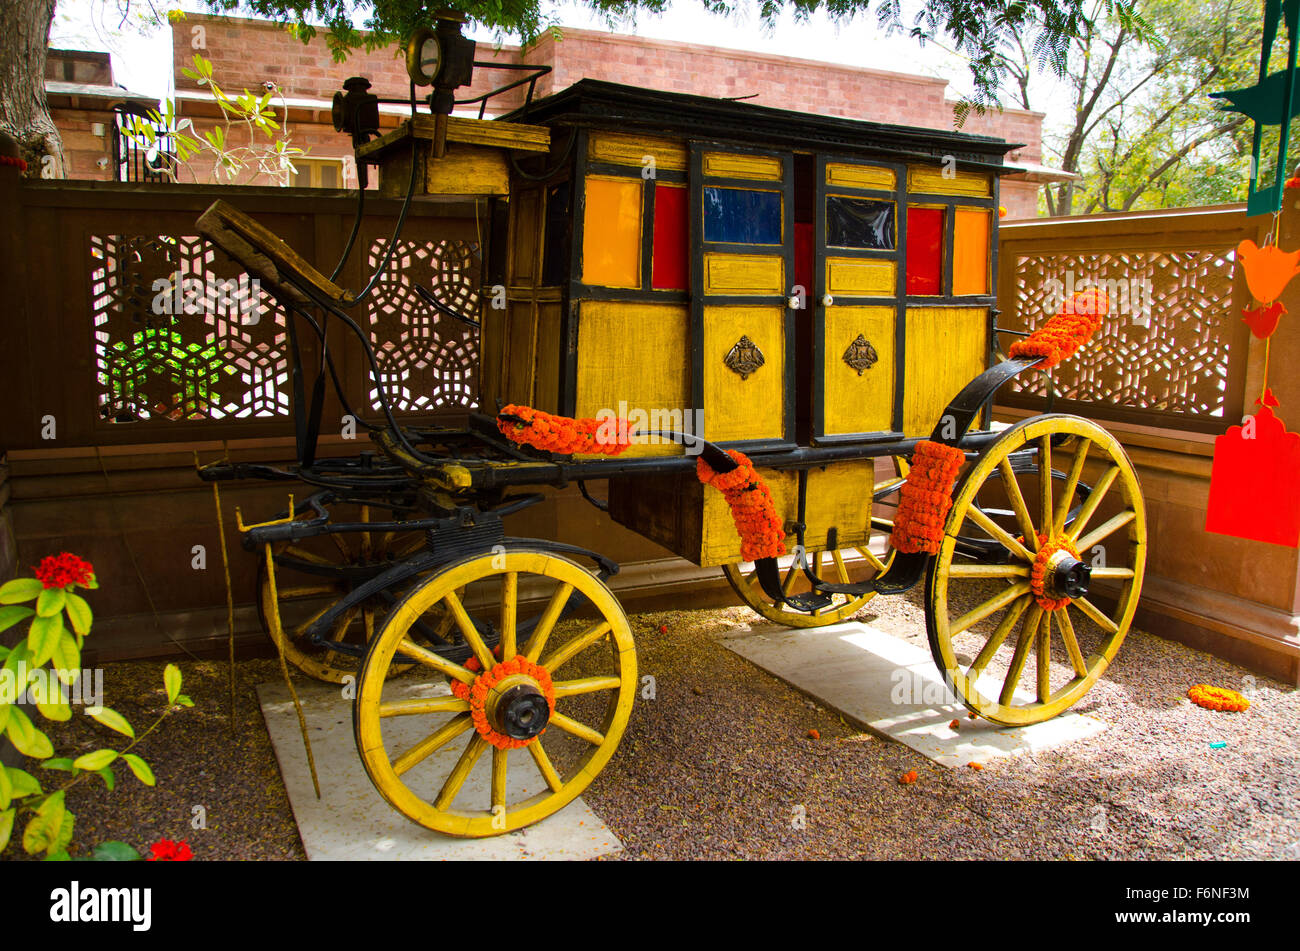 Antique decorated horse cart, jodhpur, rajasthan, india, asia - Stock Image